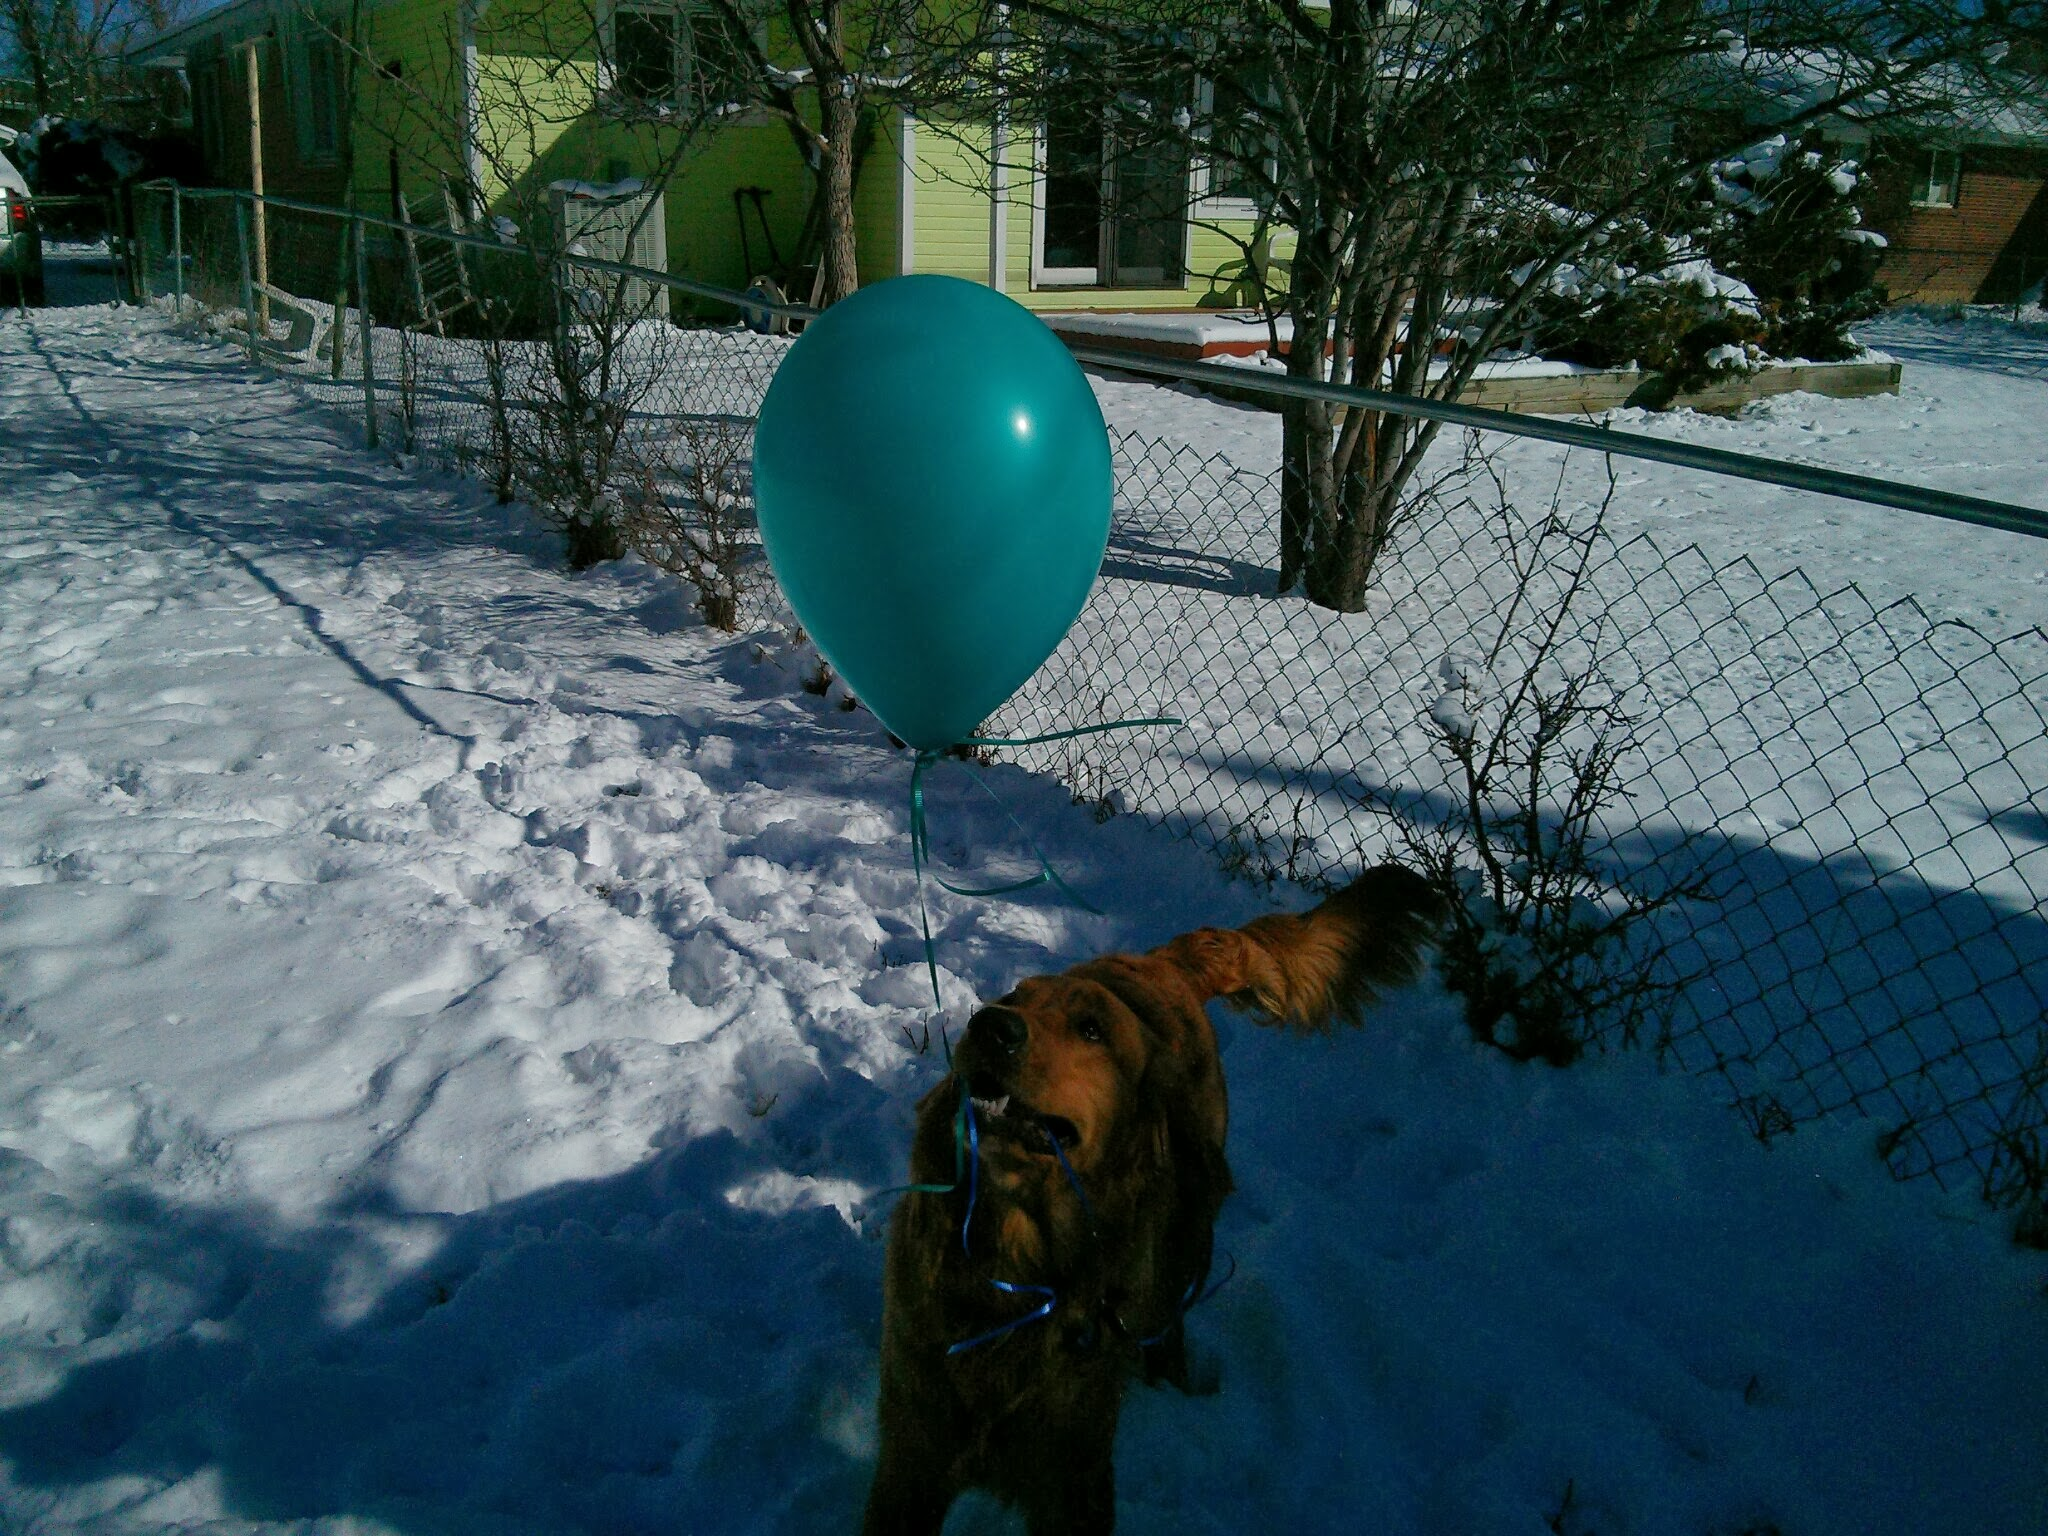 Bender the golden retriever gives the balloon a dirty look